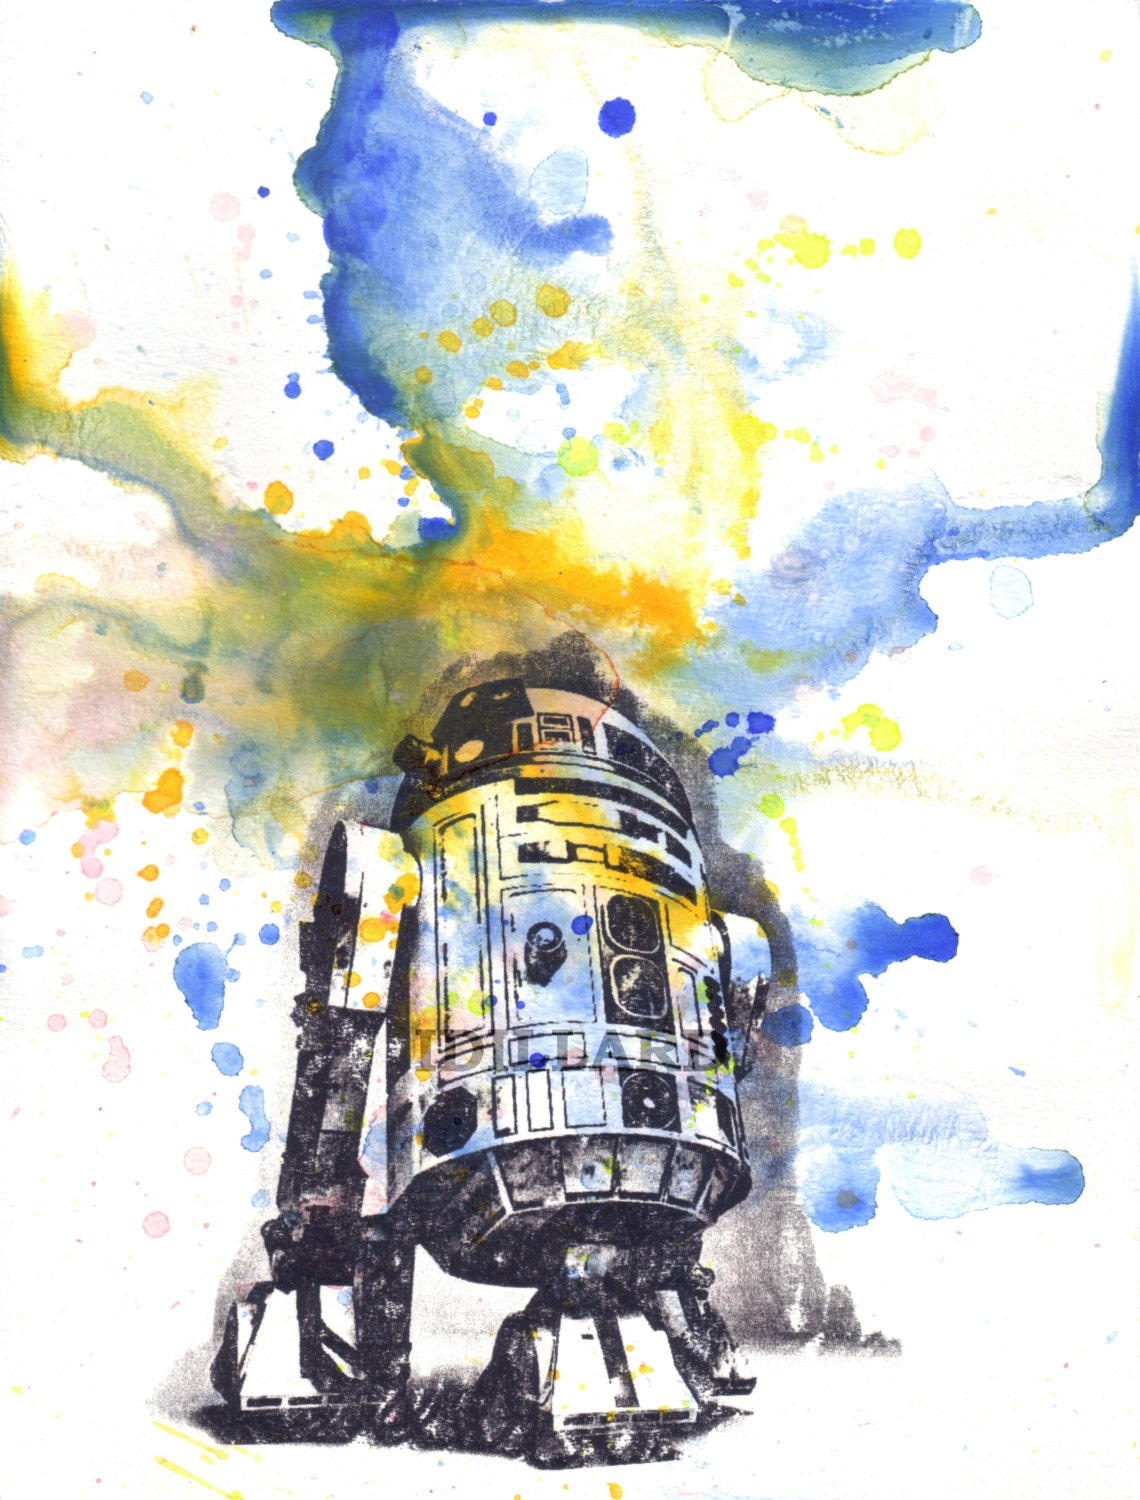 Star Wars R2d2 Art Star Wars Art R2d2 Poster